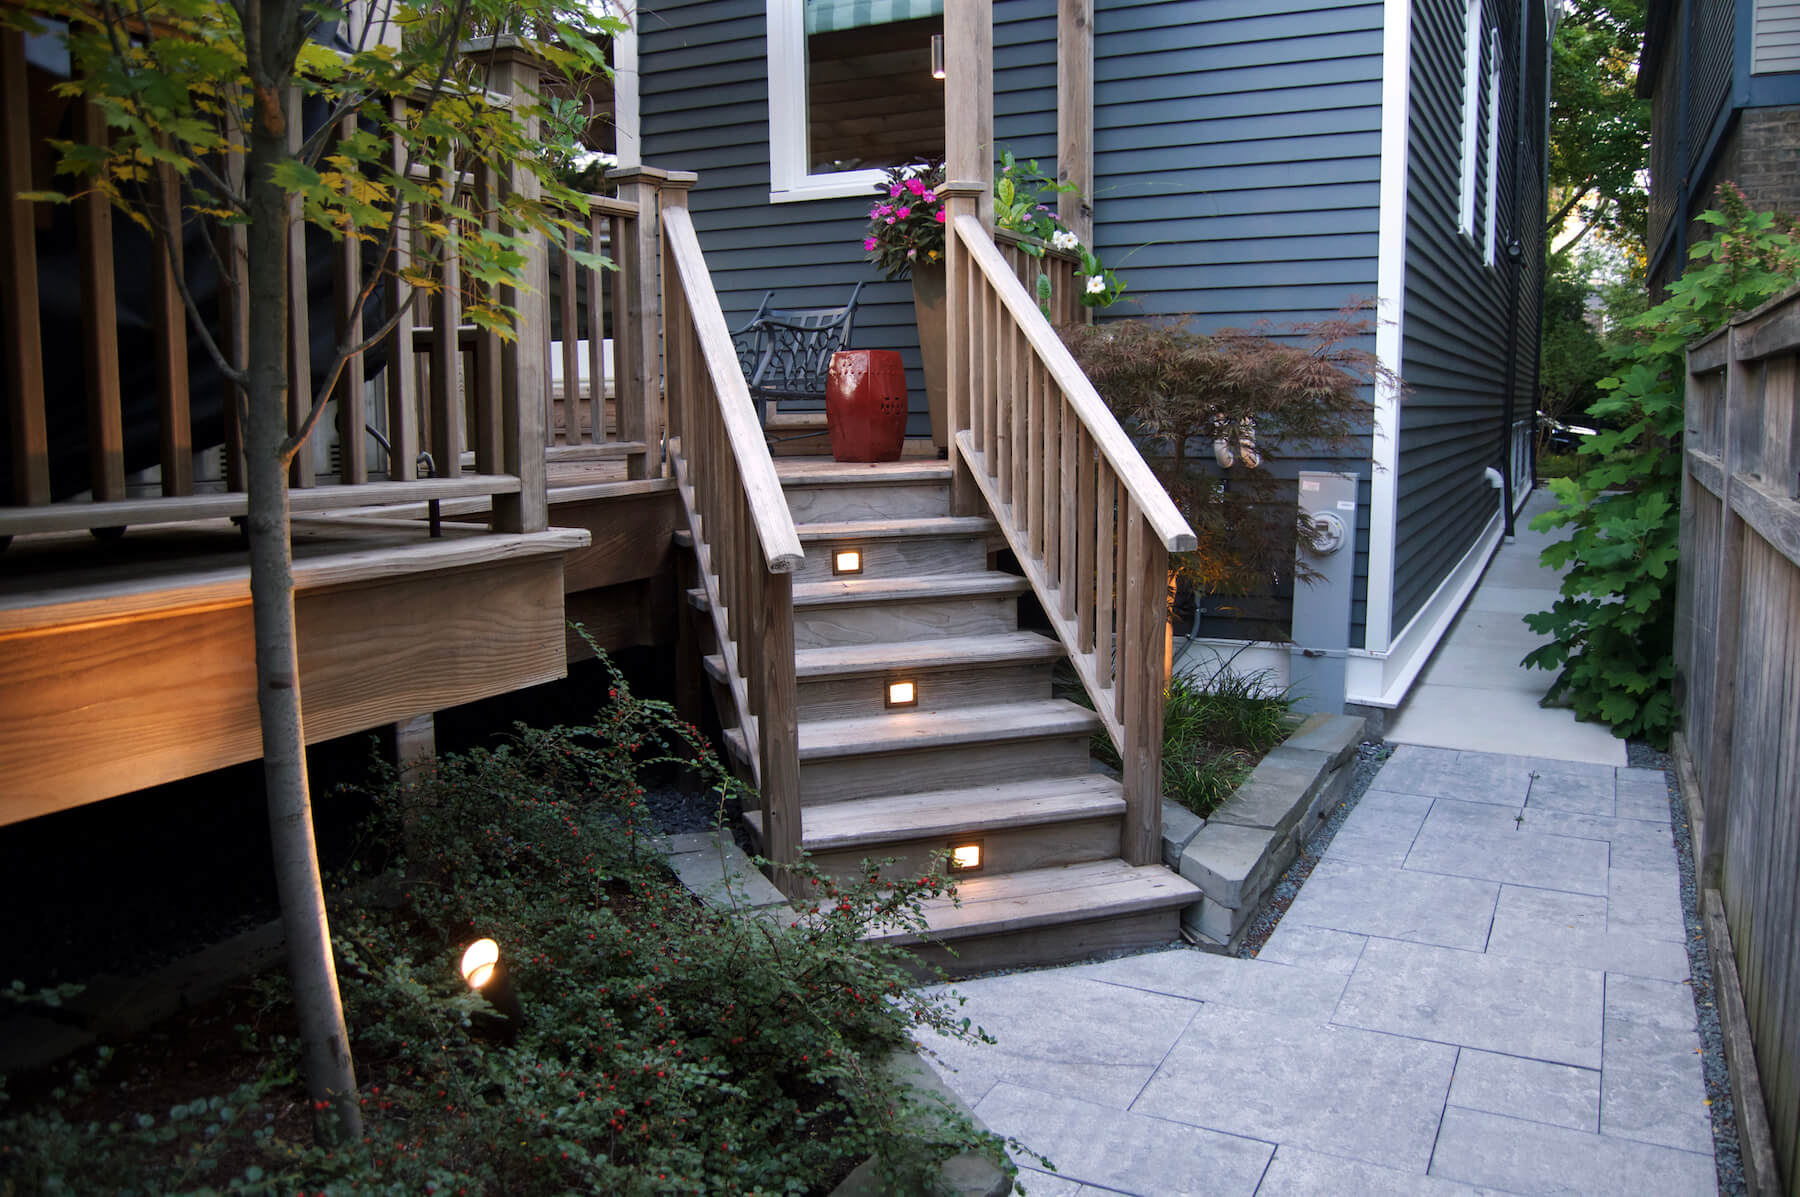 Paver walkway and landscape lighting